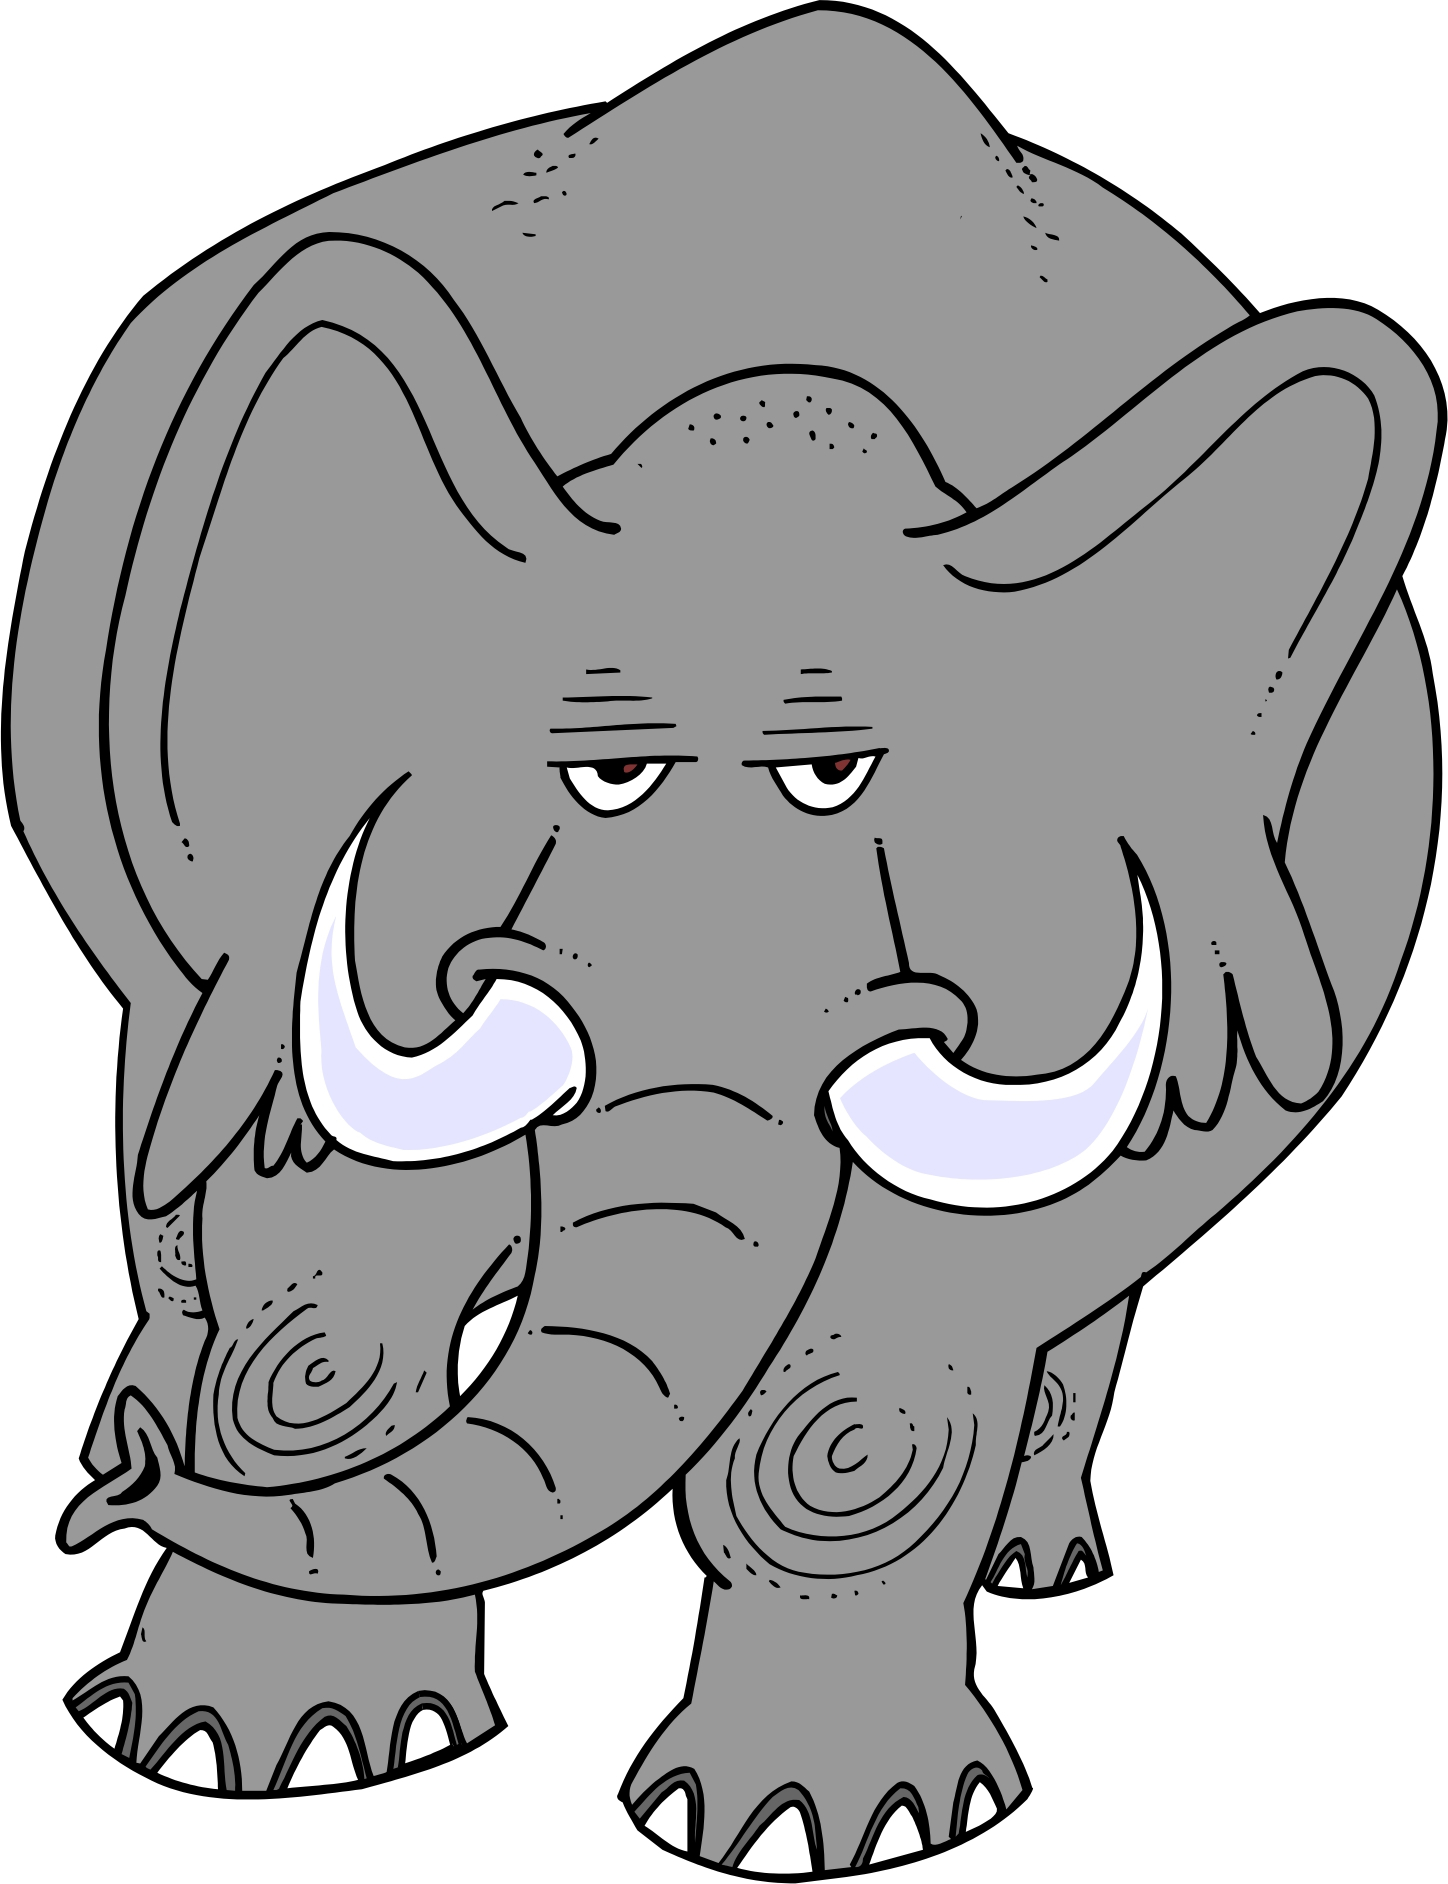 Cartoon Elephant - ClipArt Best - ClipArt Best